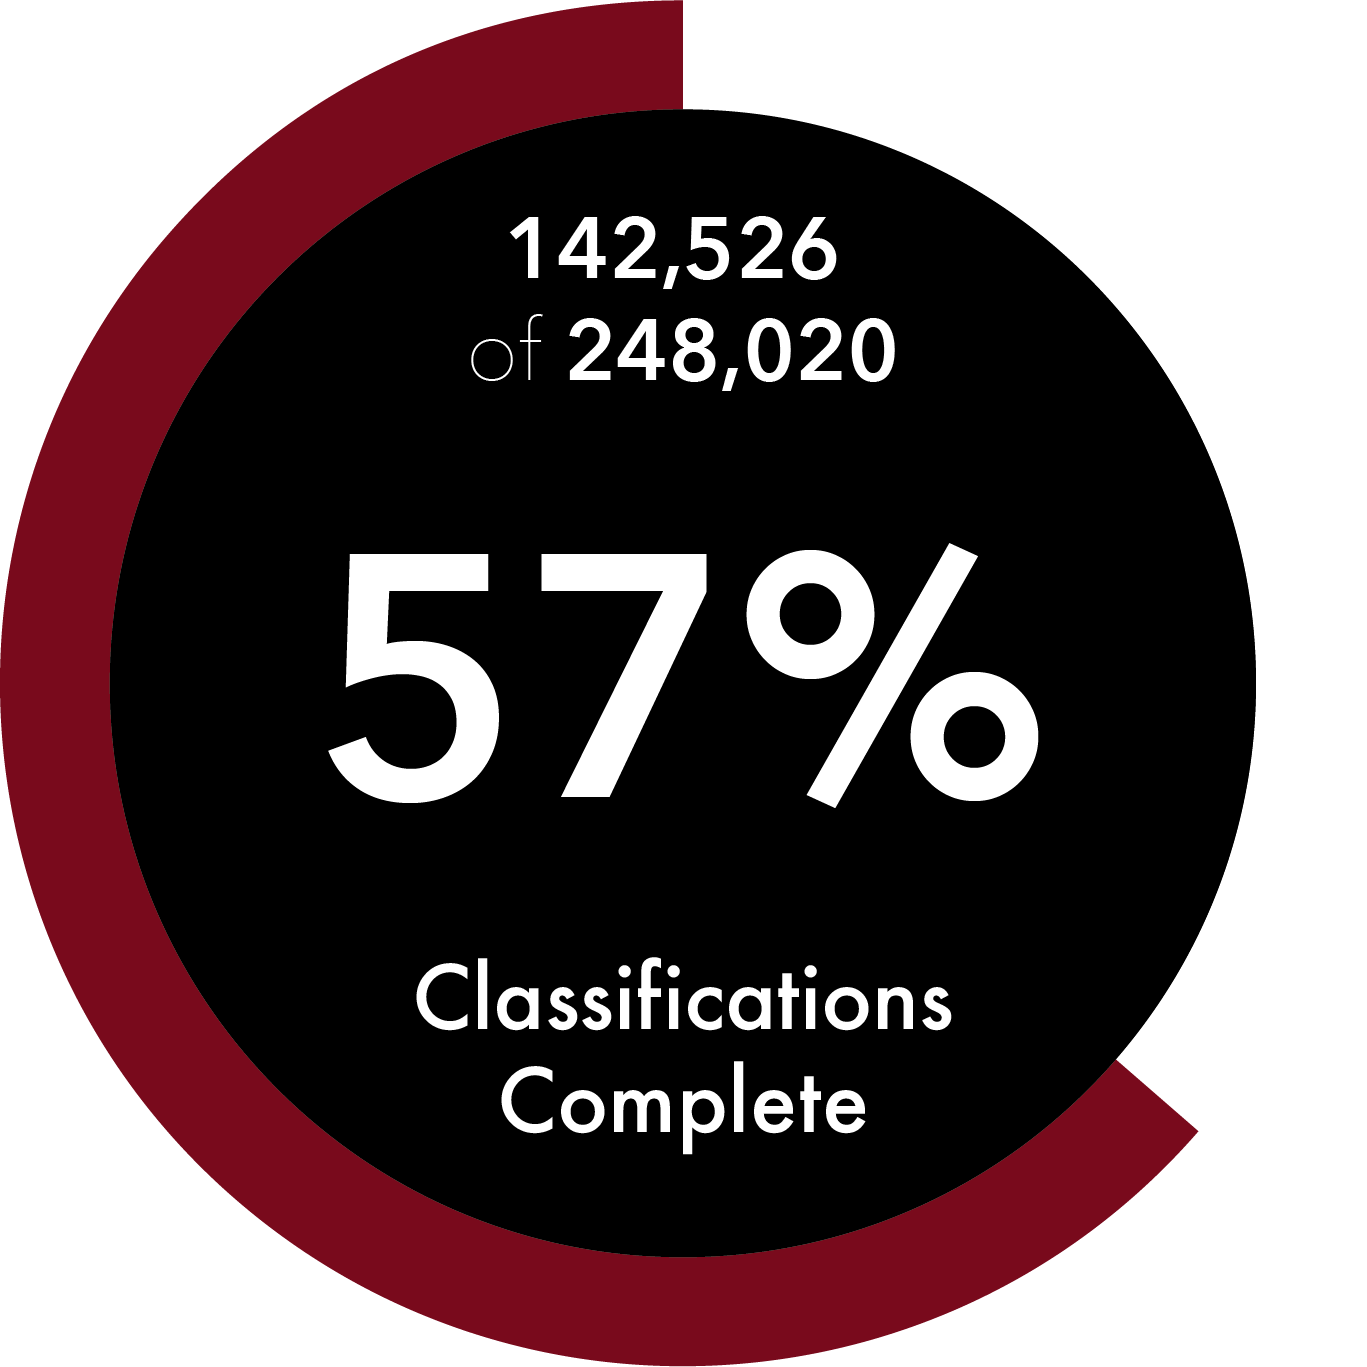 We have 4,639 rockstar volunteers! If our volunteers continue working at their current pace, we will finish Ramsey County transcriptions in 167 days!